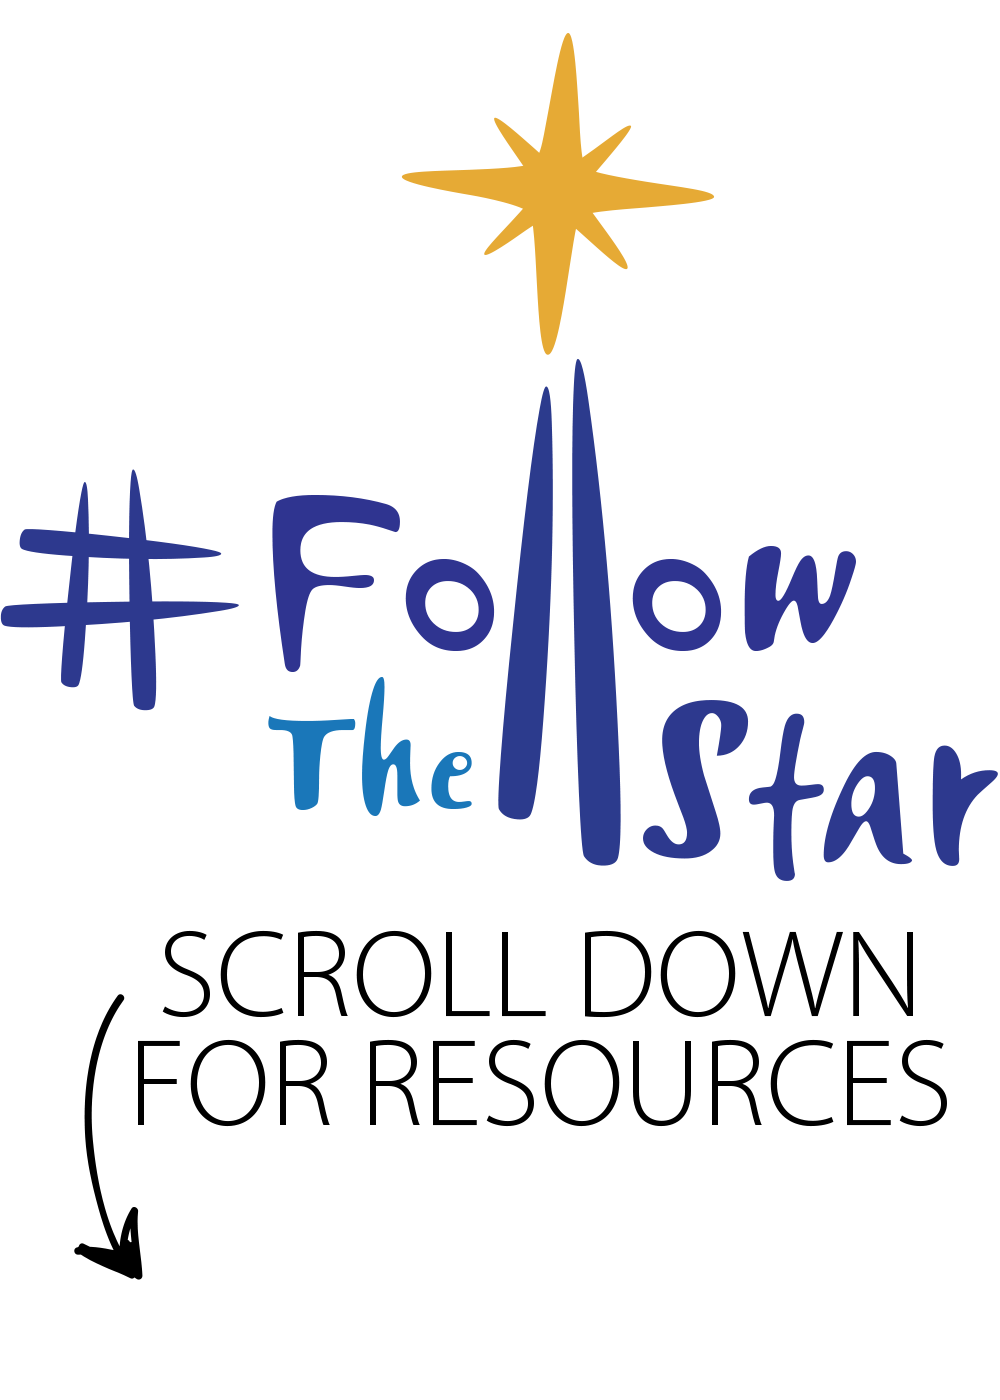 Scroll down for #FollowTheStar resources